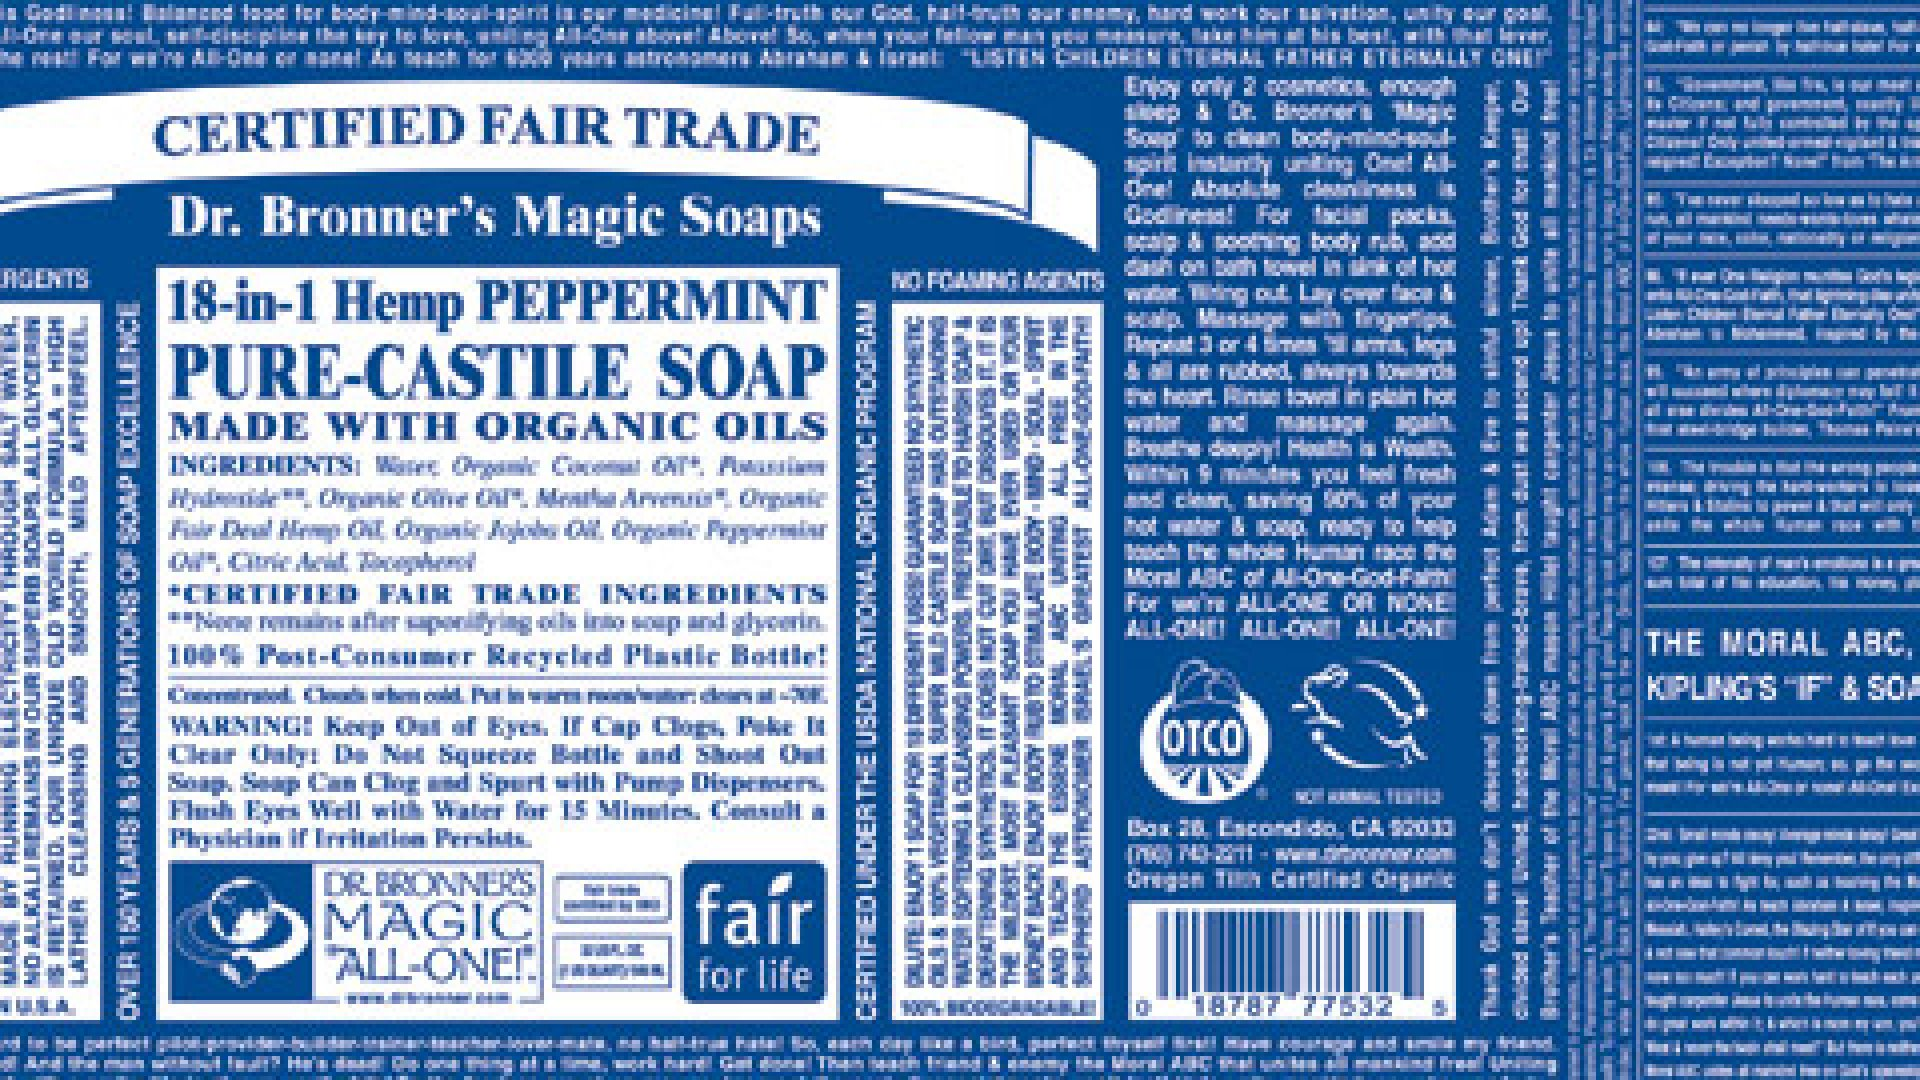 The Undiluted Genius of Dr. Bronner's